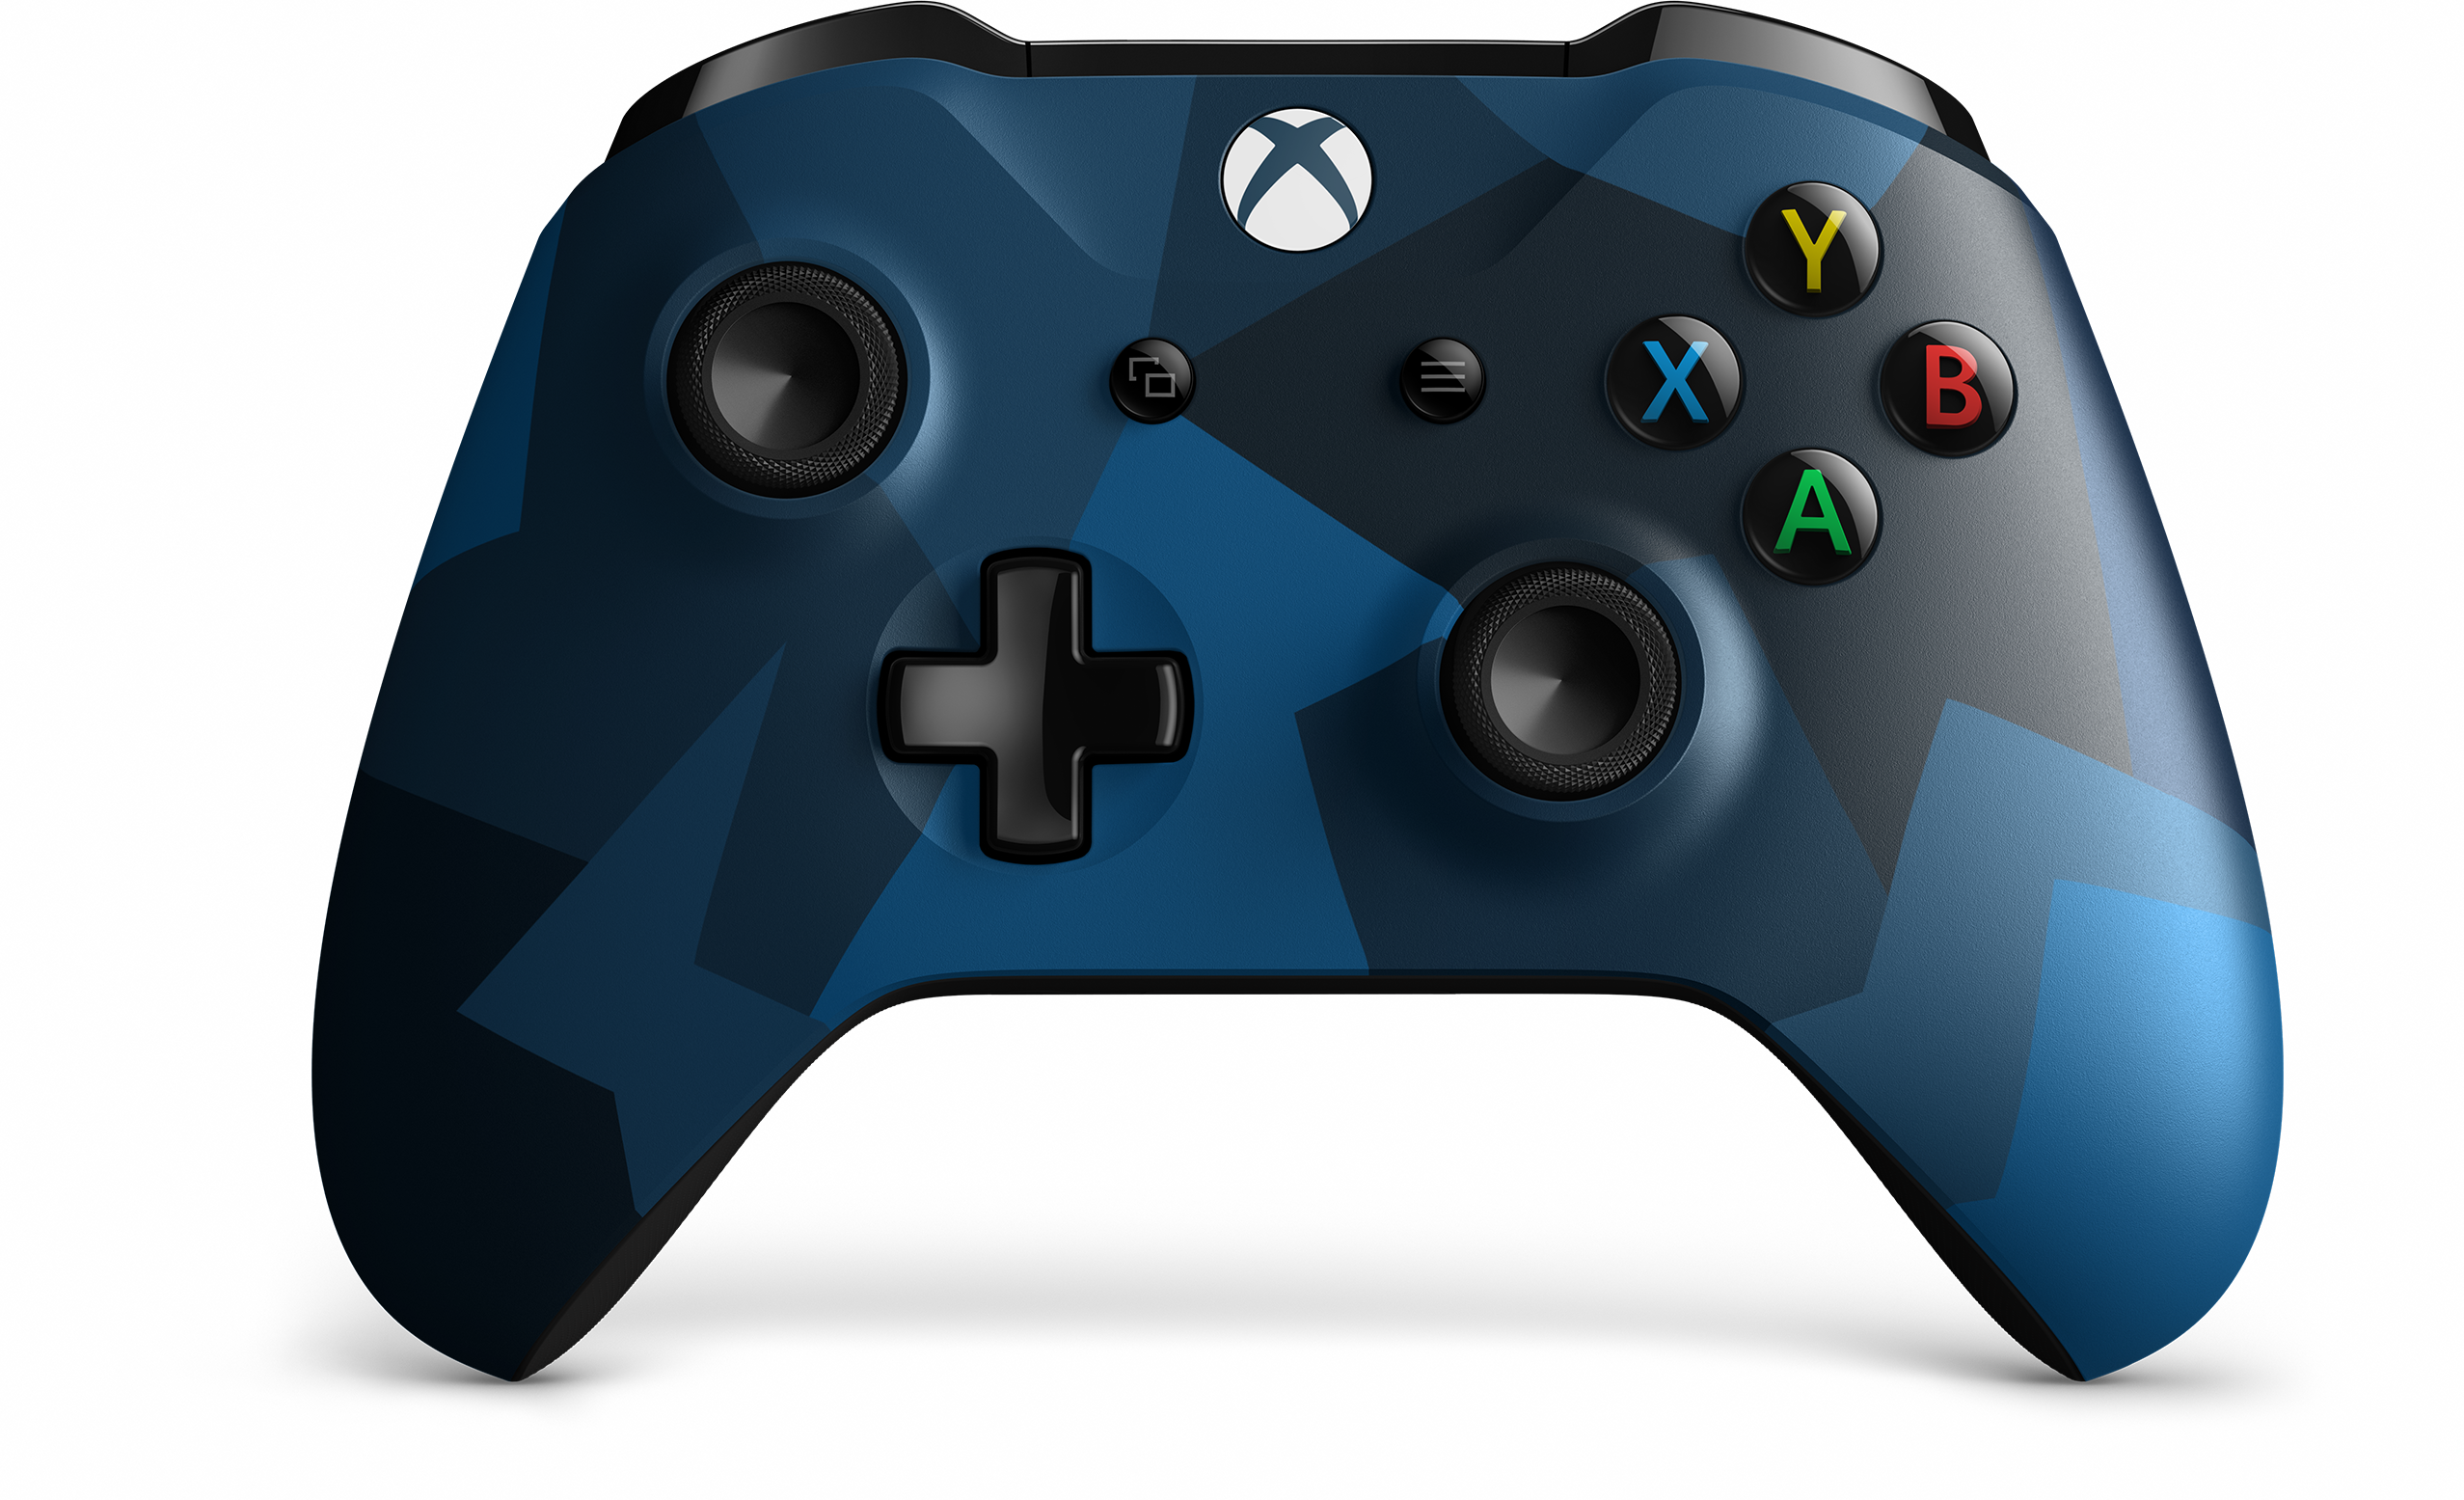 RE3ByAx?ver=71d7 - Xbox Wireless Controller – Midnight Forces II Special Edition